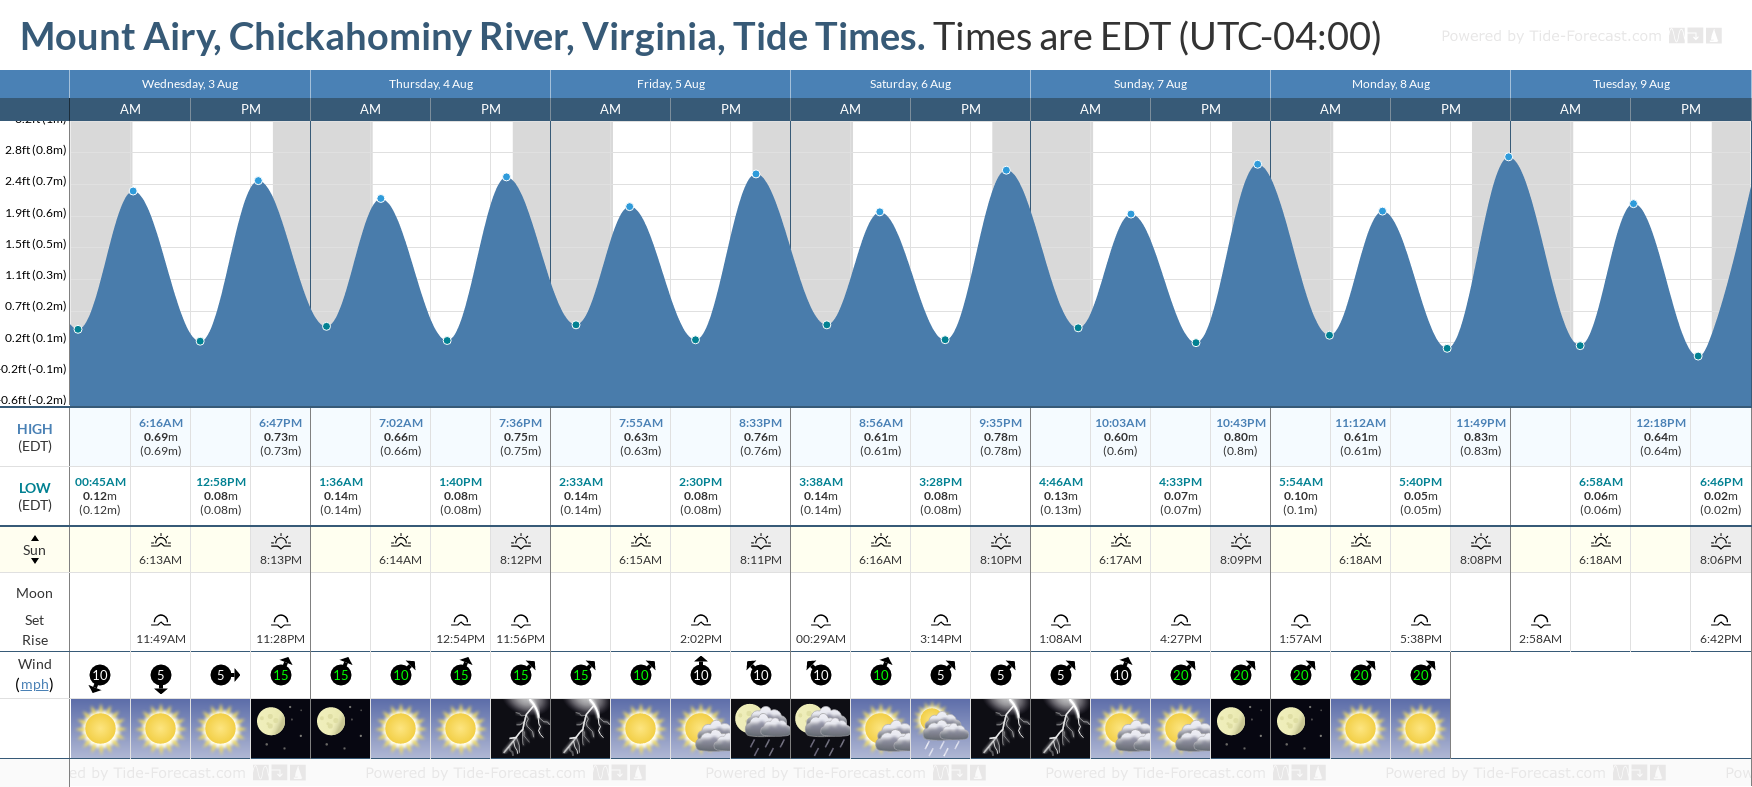 Mount Airy, Chickahominy River, Virginia Tide Chart including high and low tide tide times for the next 7 days